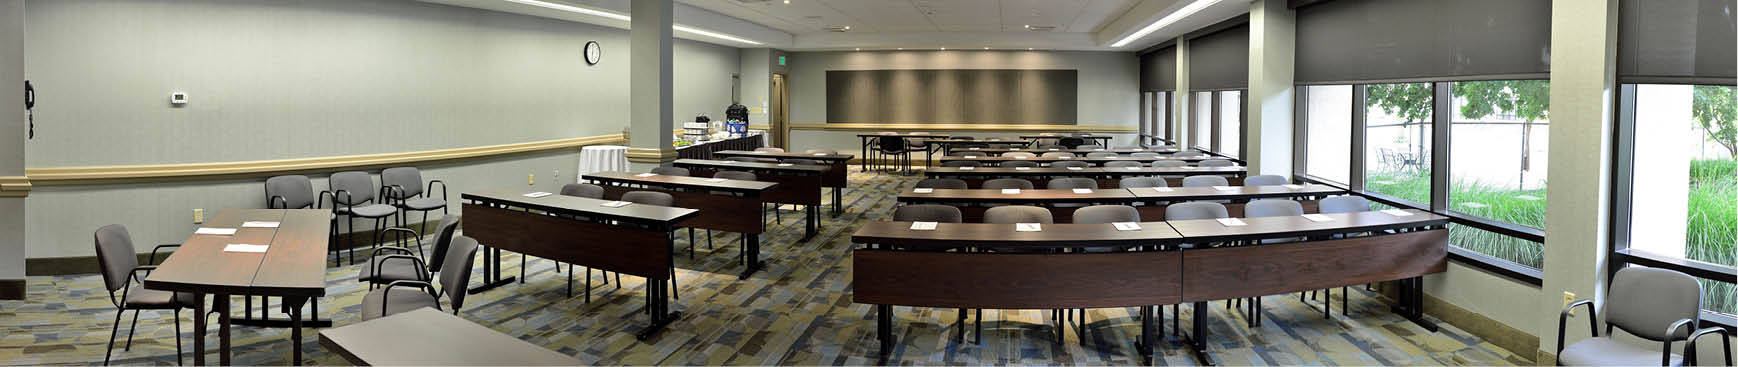 Meetings Conference Rooms of Turf Valley Resort